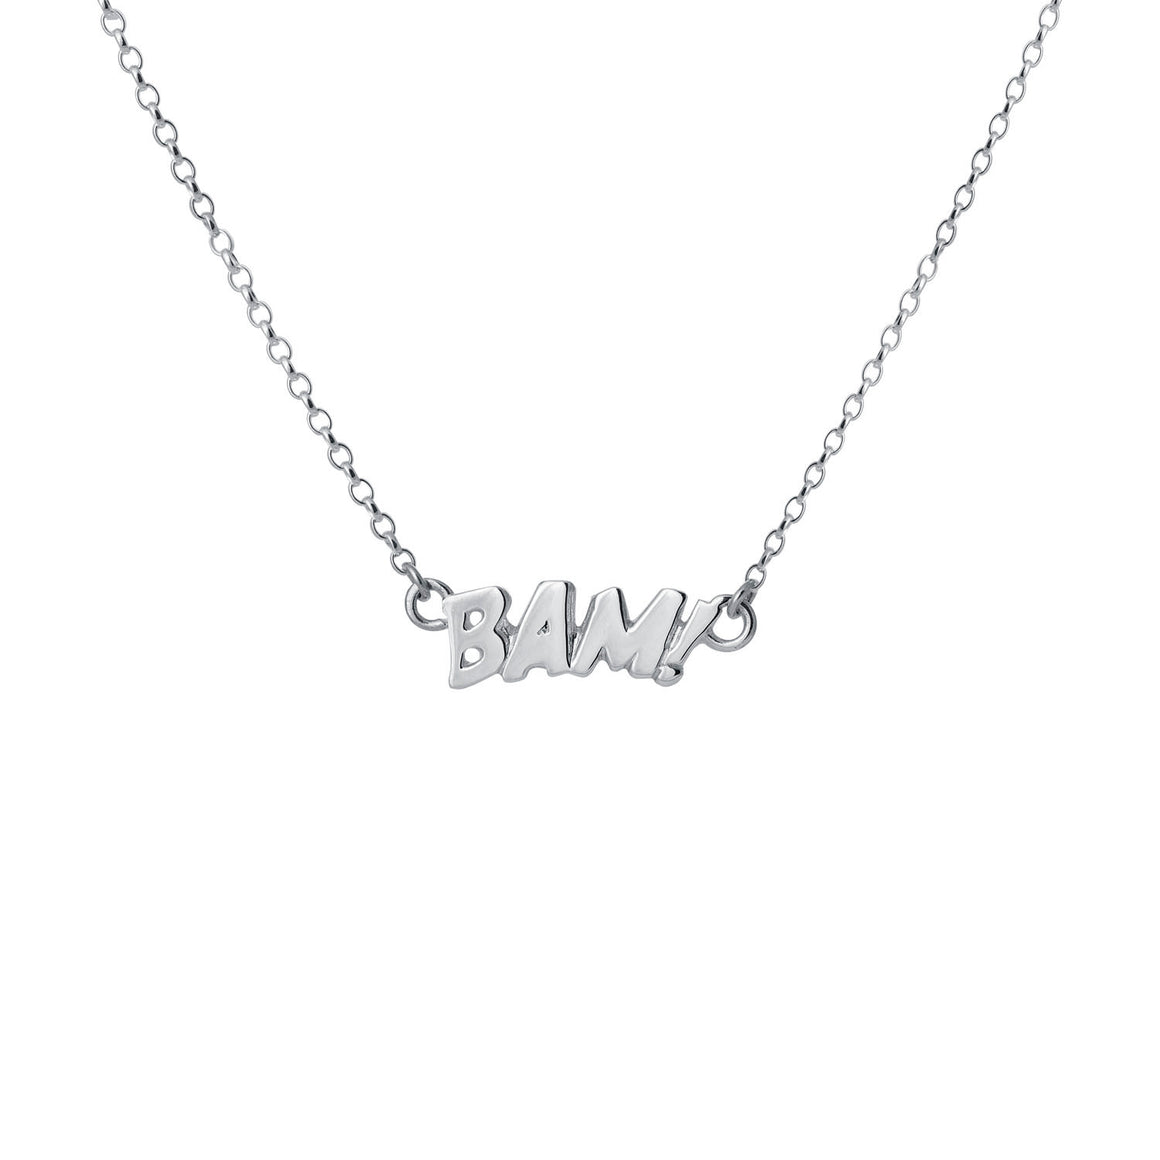 Edge Only BAM! Letters Necklace Small in sterling silver